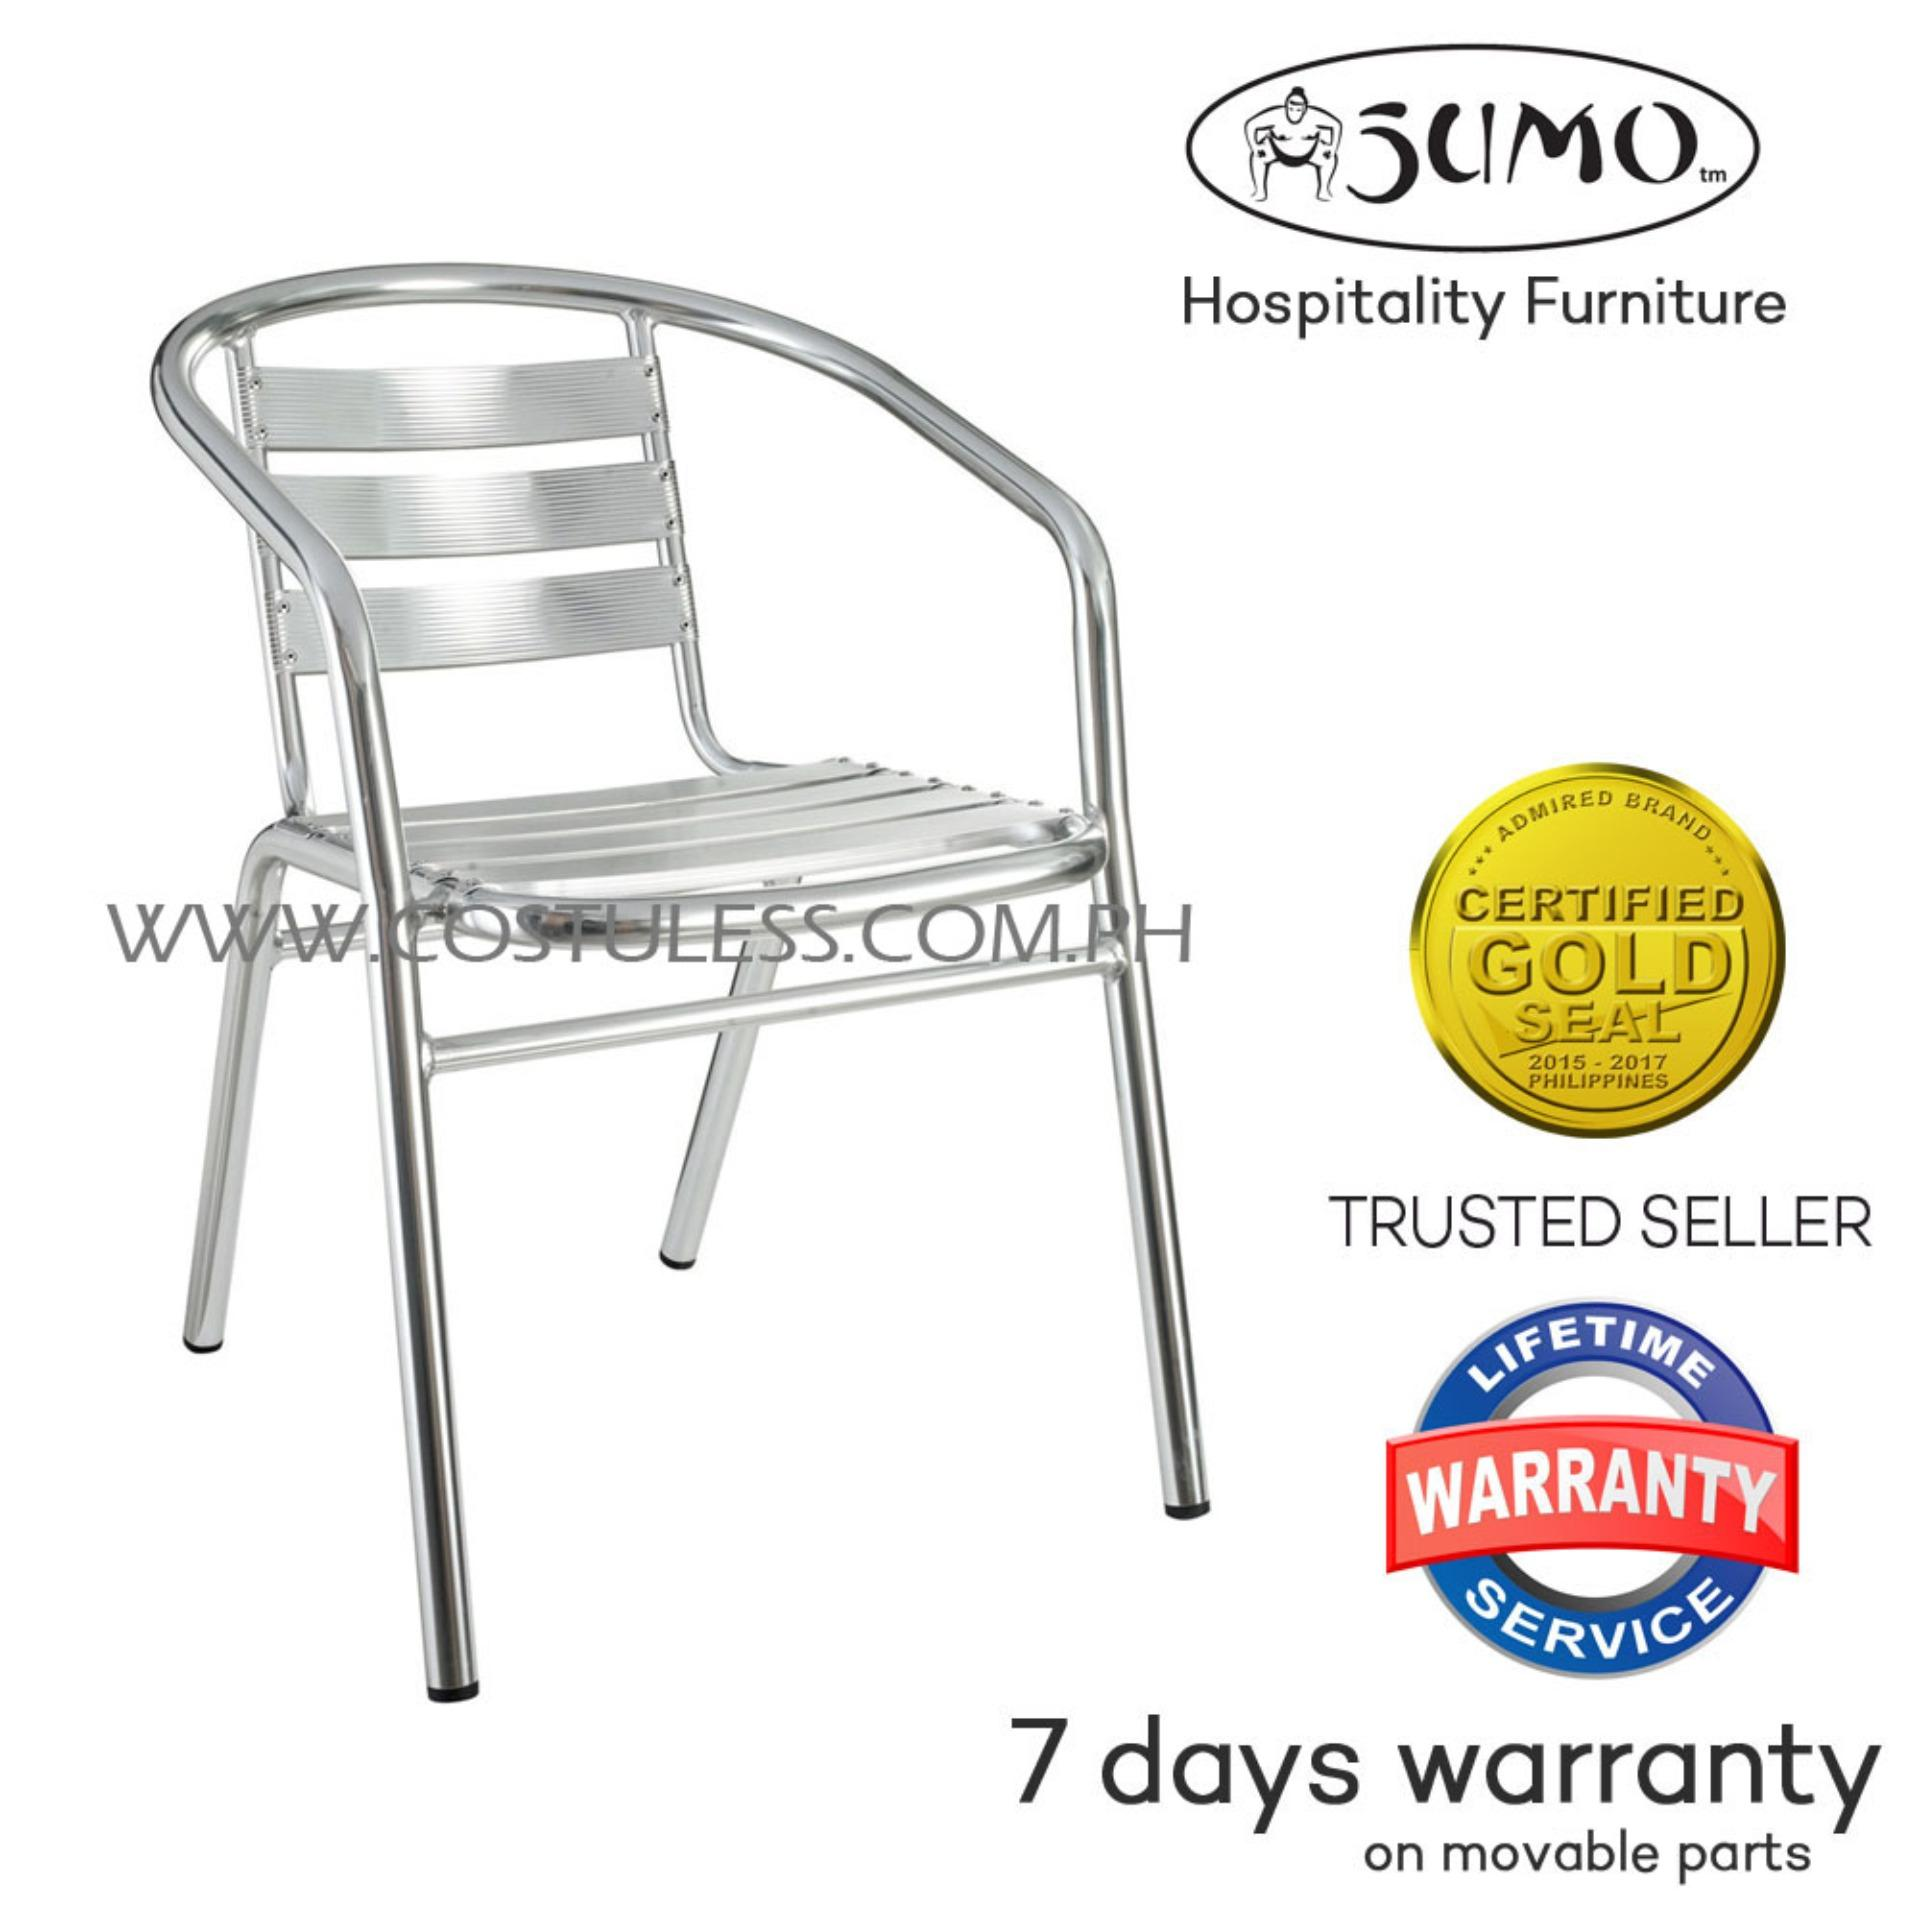 aluminum chairs philippines bcasa philippines sumo aca103dlx deluxe aluminum outdoor chair silver lounge for sale set prices brands review